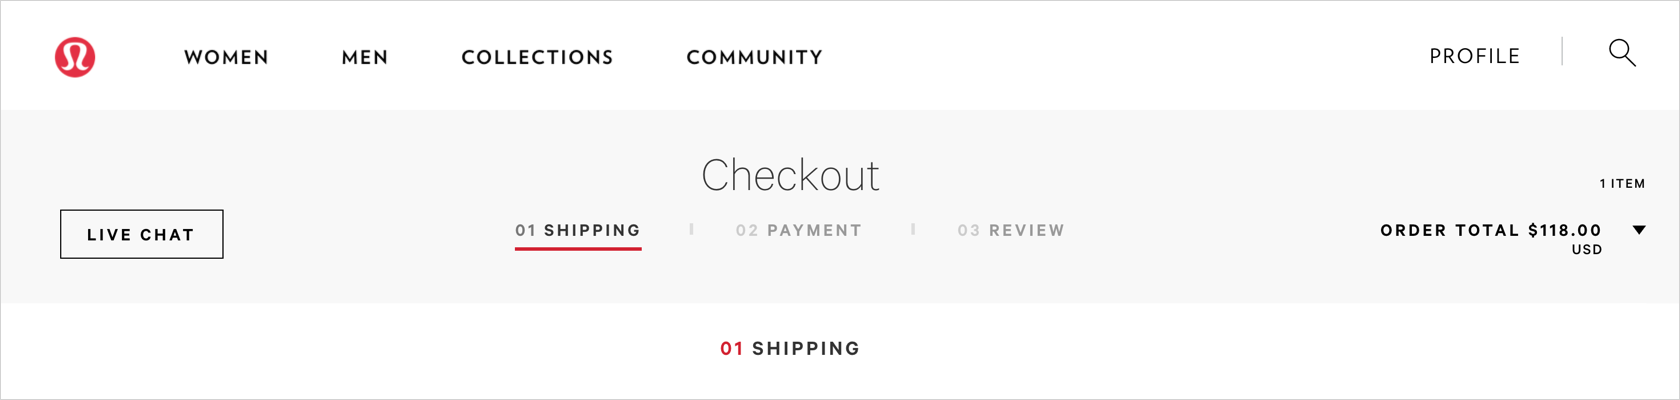 ecommerce checkout UI design